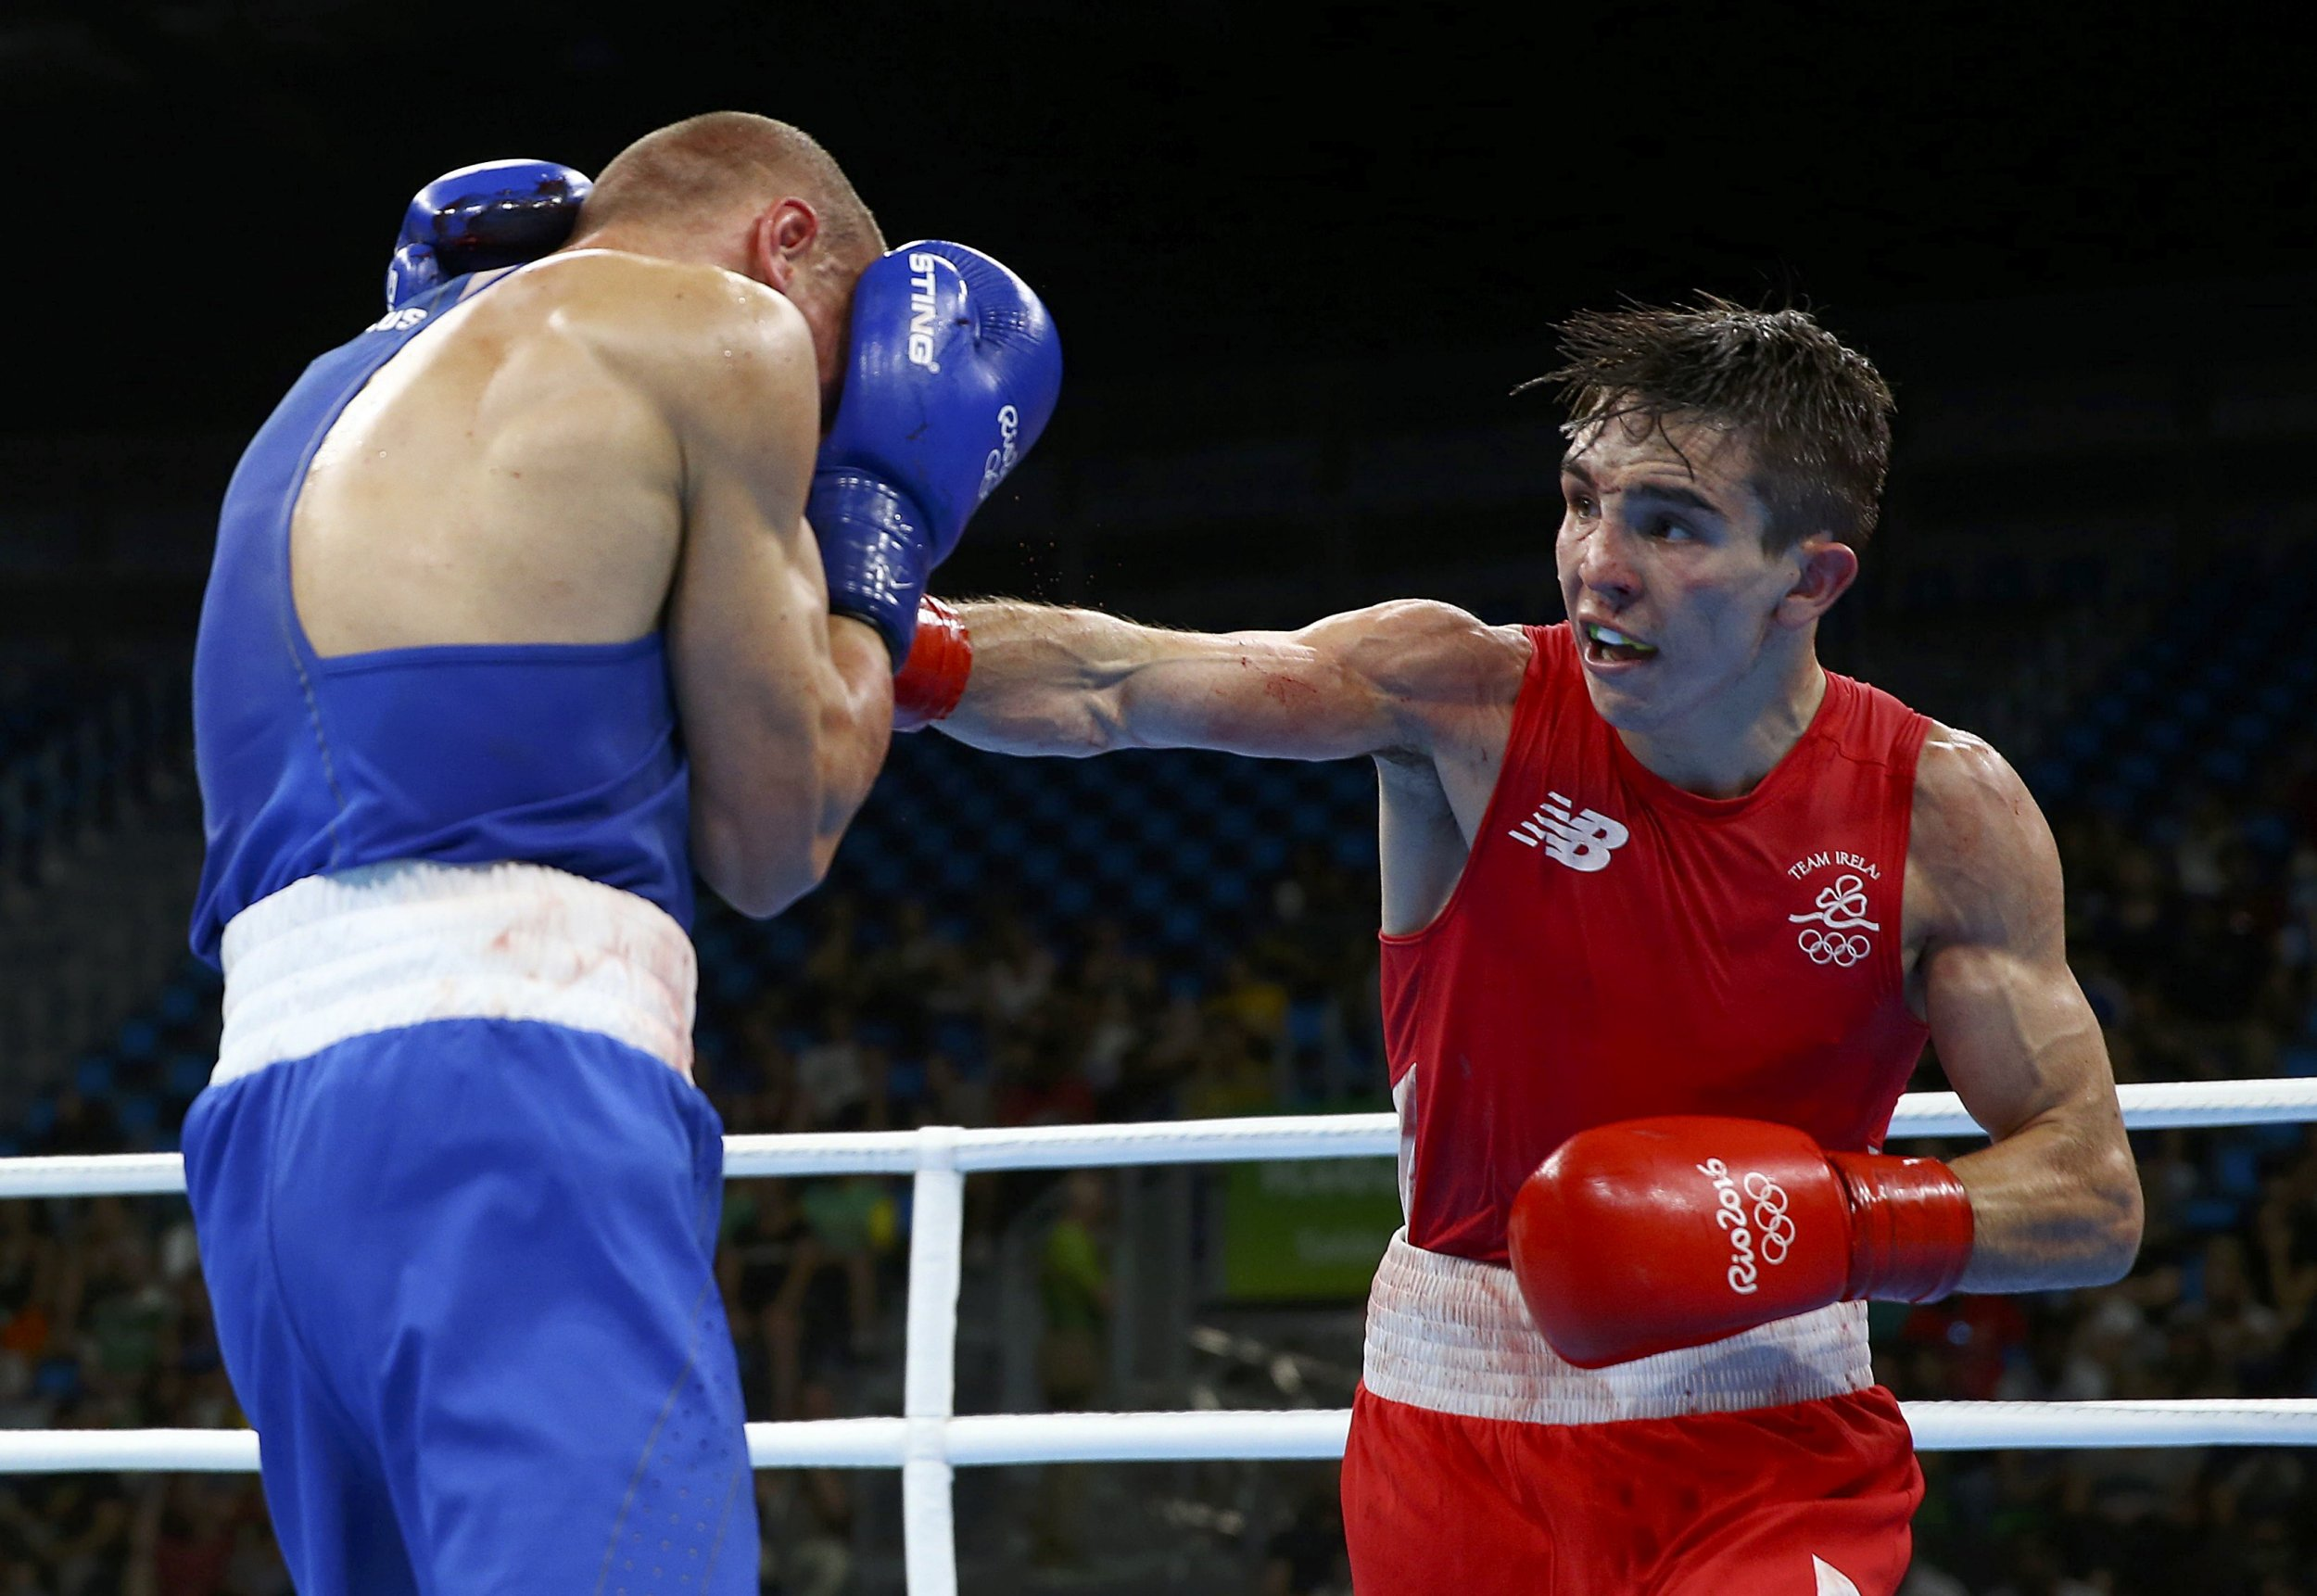 2016 Rio Olympics - Boxing - Quarterfinal - Men's Bantam (56kg) Quarterfinals Bout 223 - Riocentro - Pavilion 6 - Rio de Janeiro, Brazil - 16/08/2016. Michael Conlan (IRL) of Ireland and Vladimir Nikitin (RUS) of Russia compete. REUTERS/Peter Cziborra FOR EDITORIAL USE ONLY. NOT FOR SALE FOR MARKETING OR ADVERTISING CAMPAIGNS.